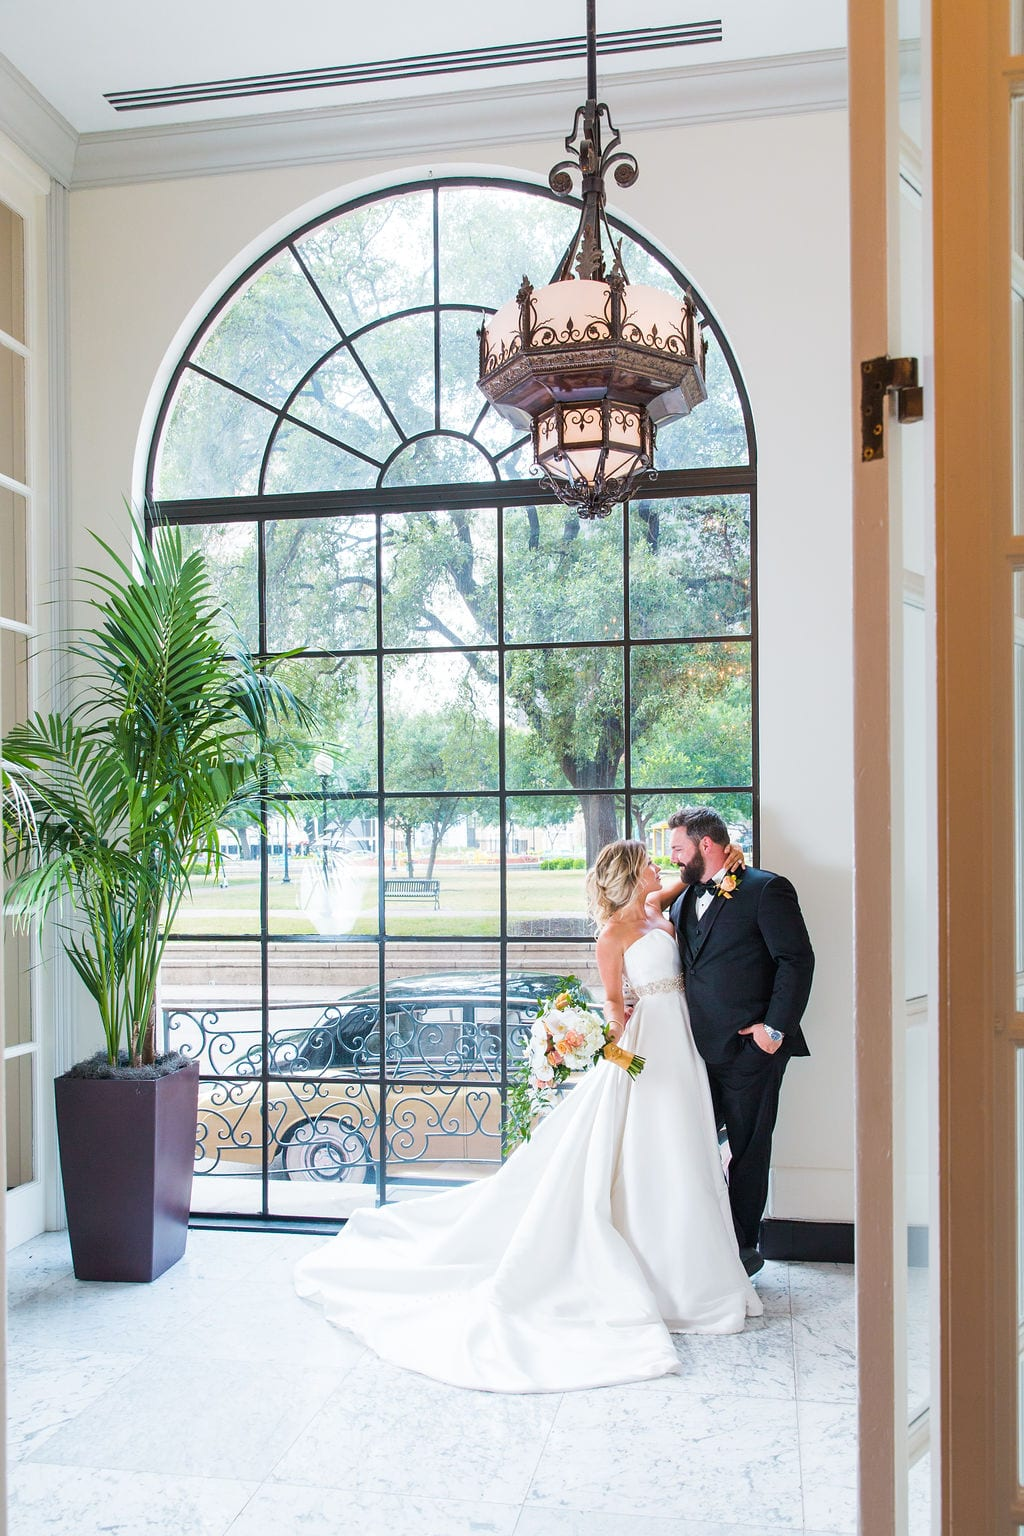 St Anthony Styled wedding bride and groom by window